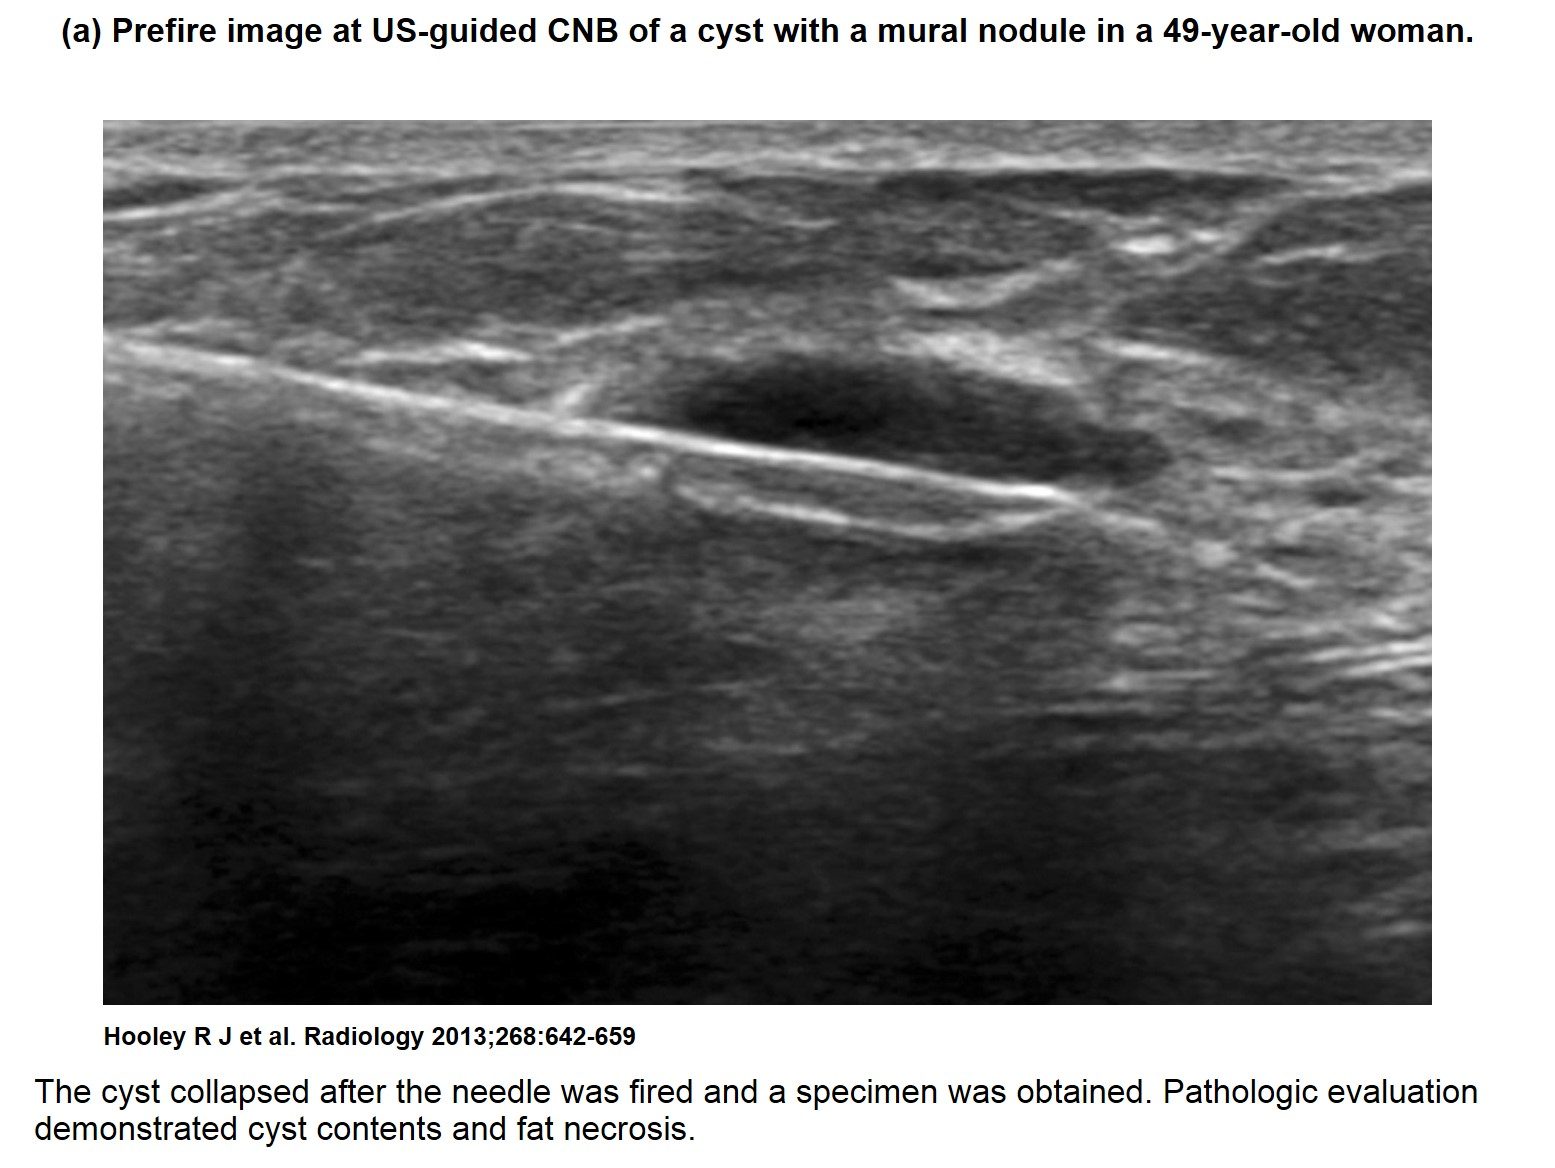 Whether to do ultrasound of the mammary glands